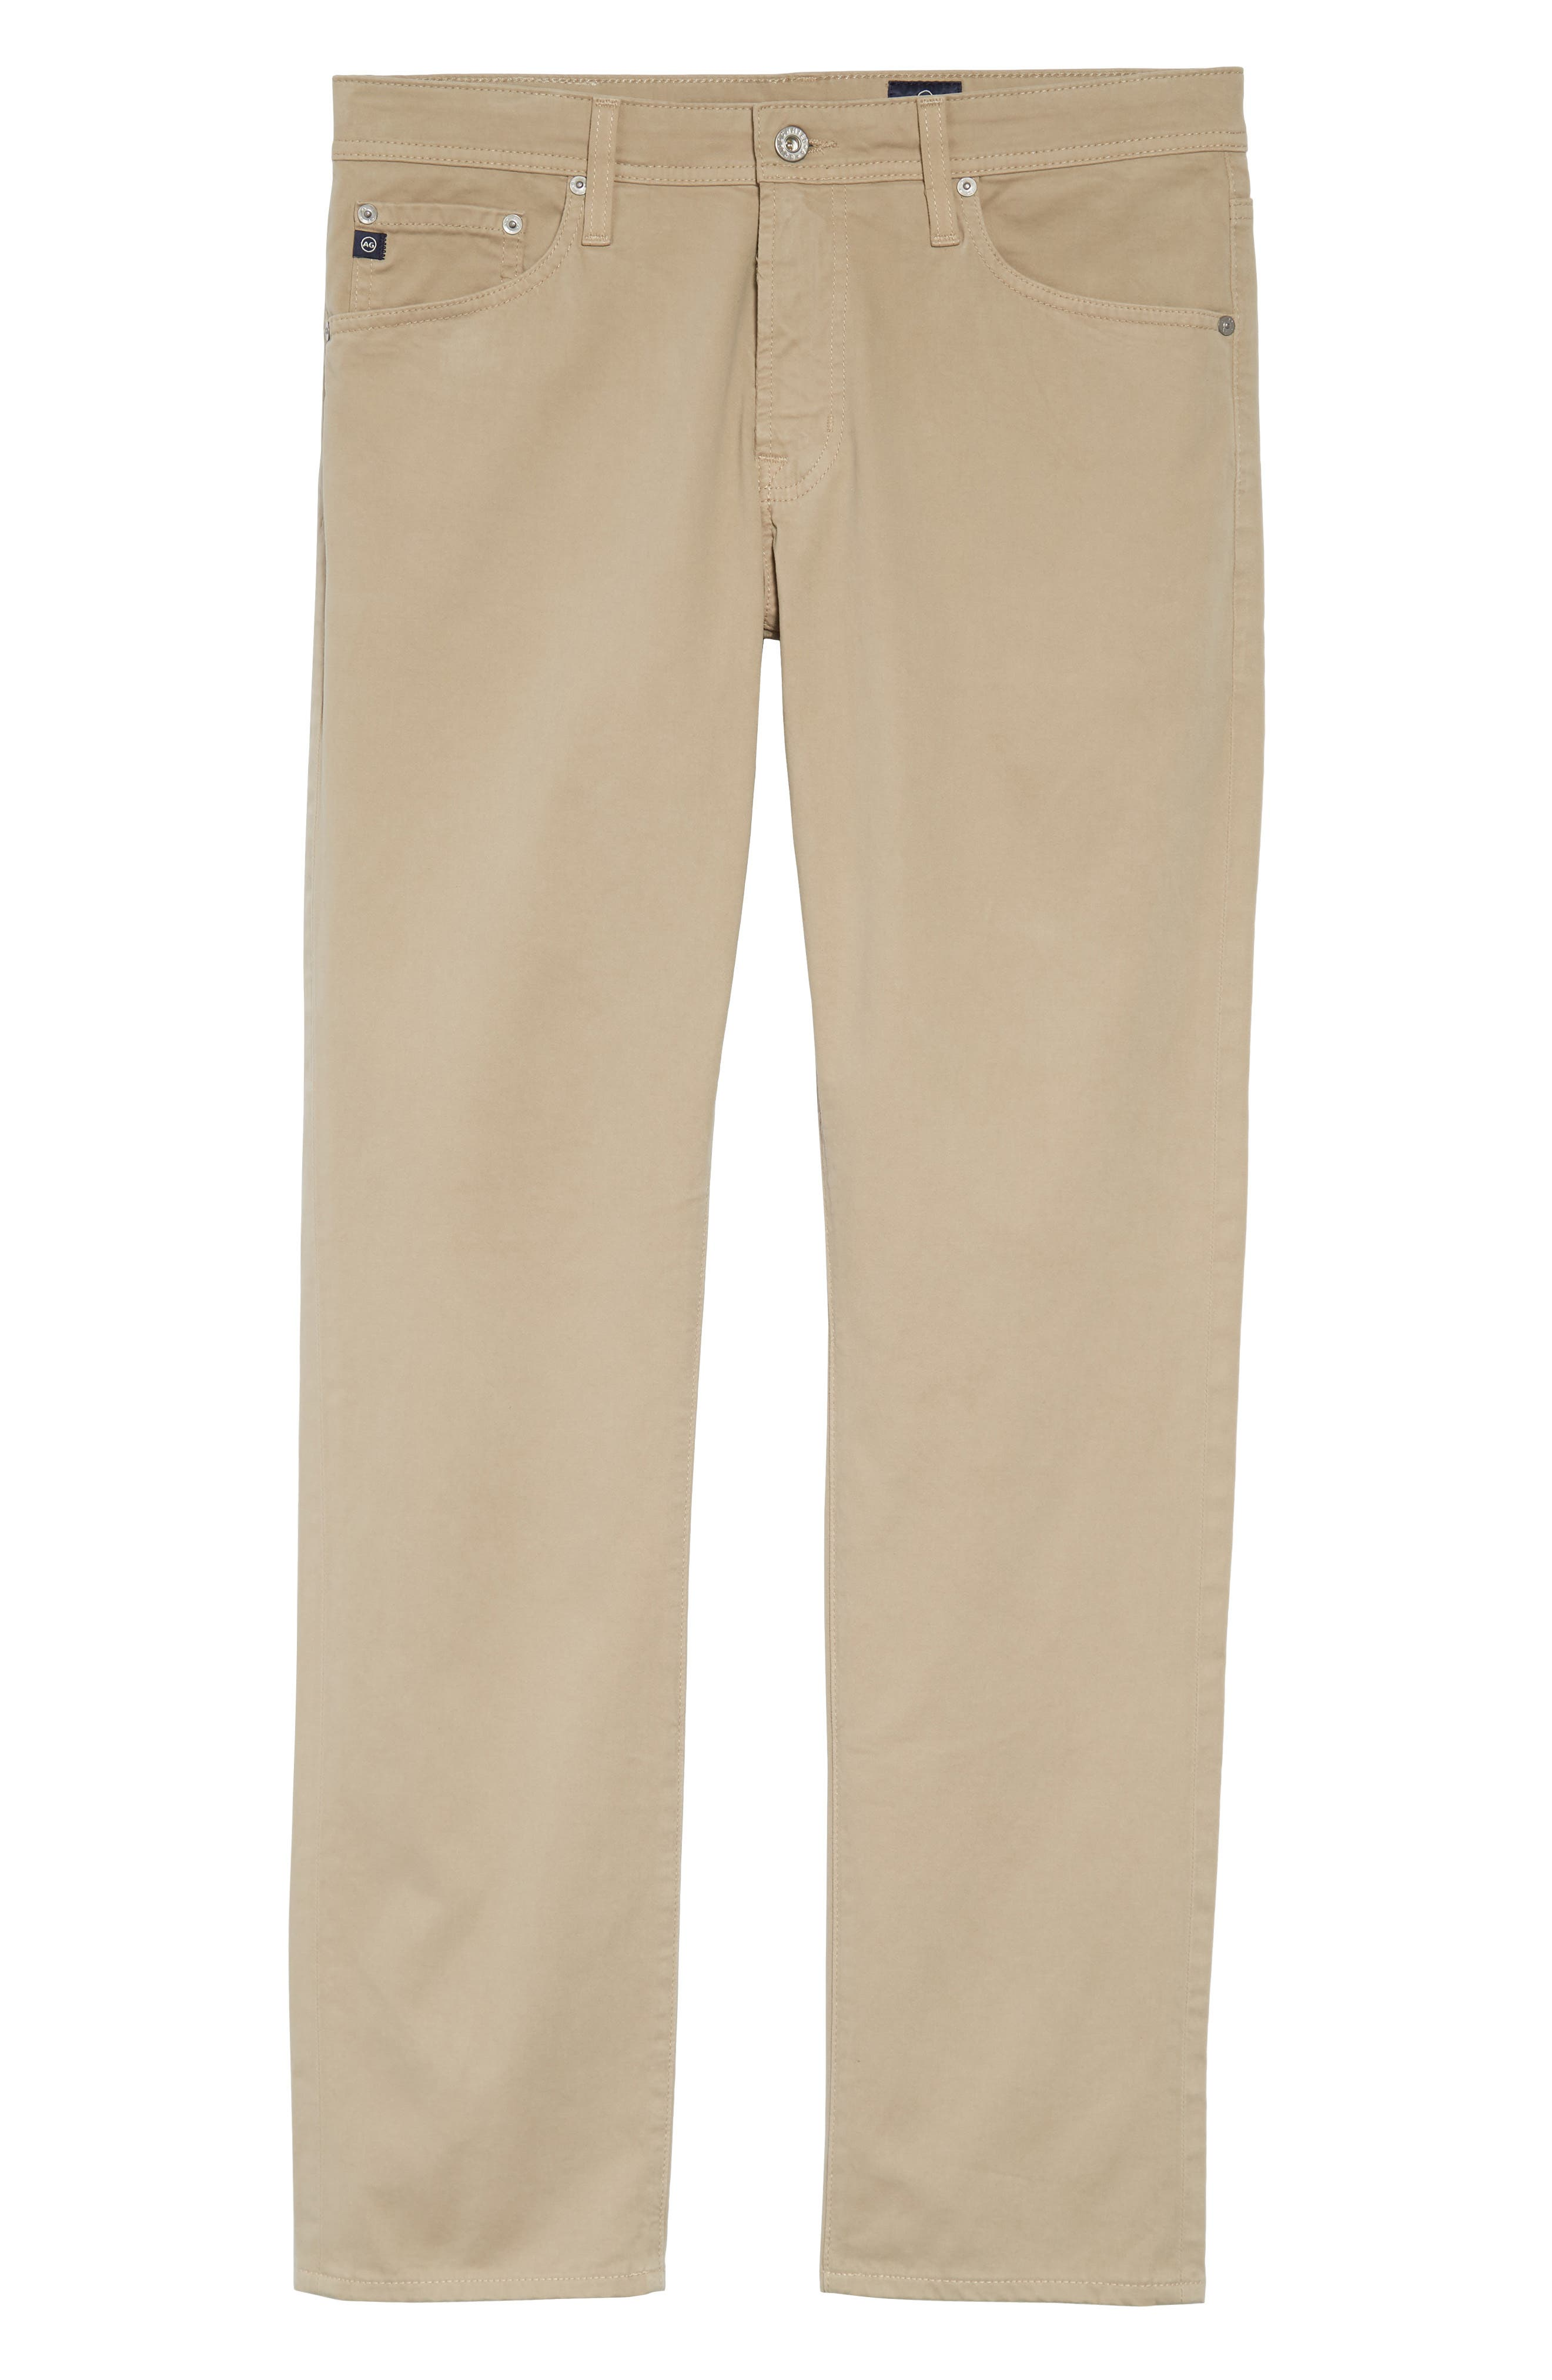 Graduate SUD Slim Straight Leg Pants,                         Main,                         color, 259